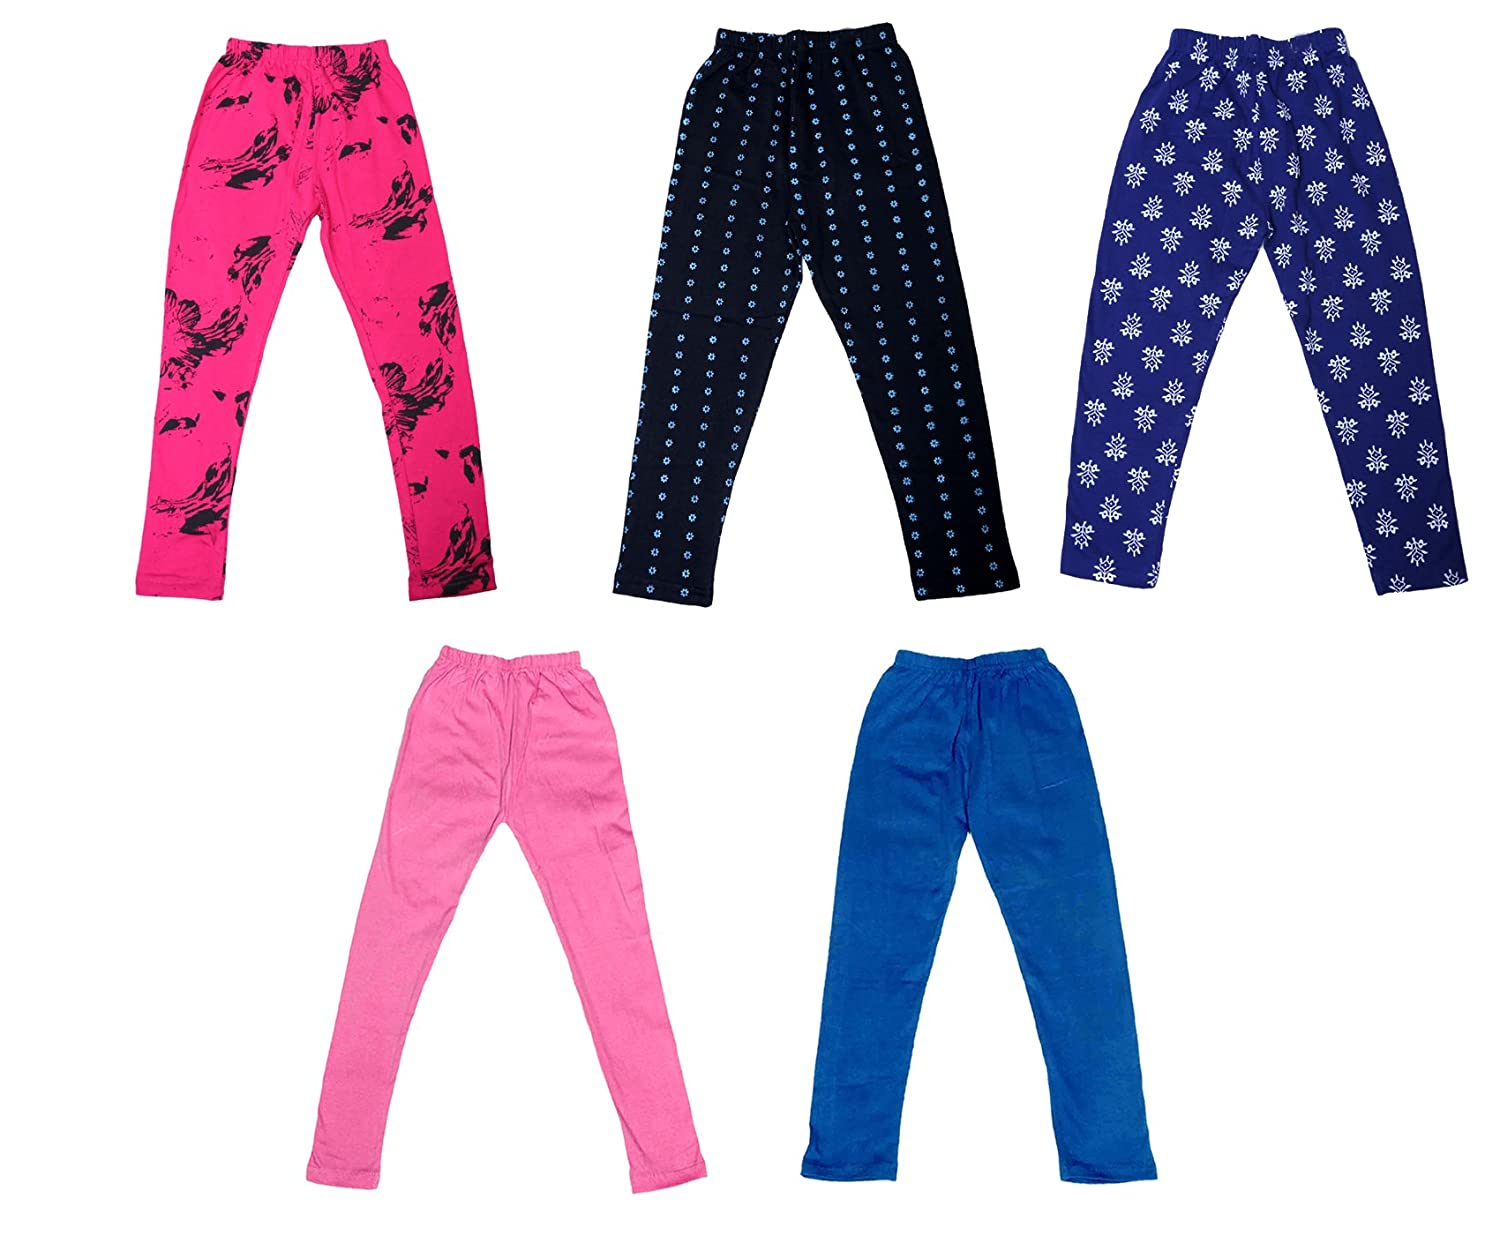 Pack of 5 Indistar Super Soft and Stylish 2 Solid and 3 Cotton Printed Leggings For Girls